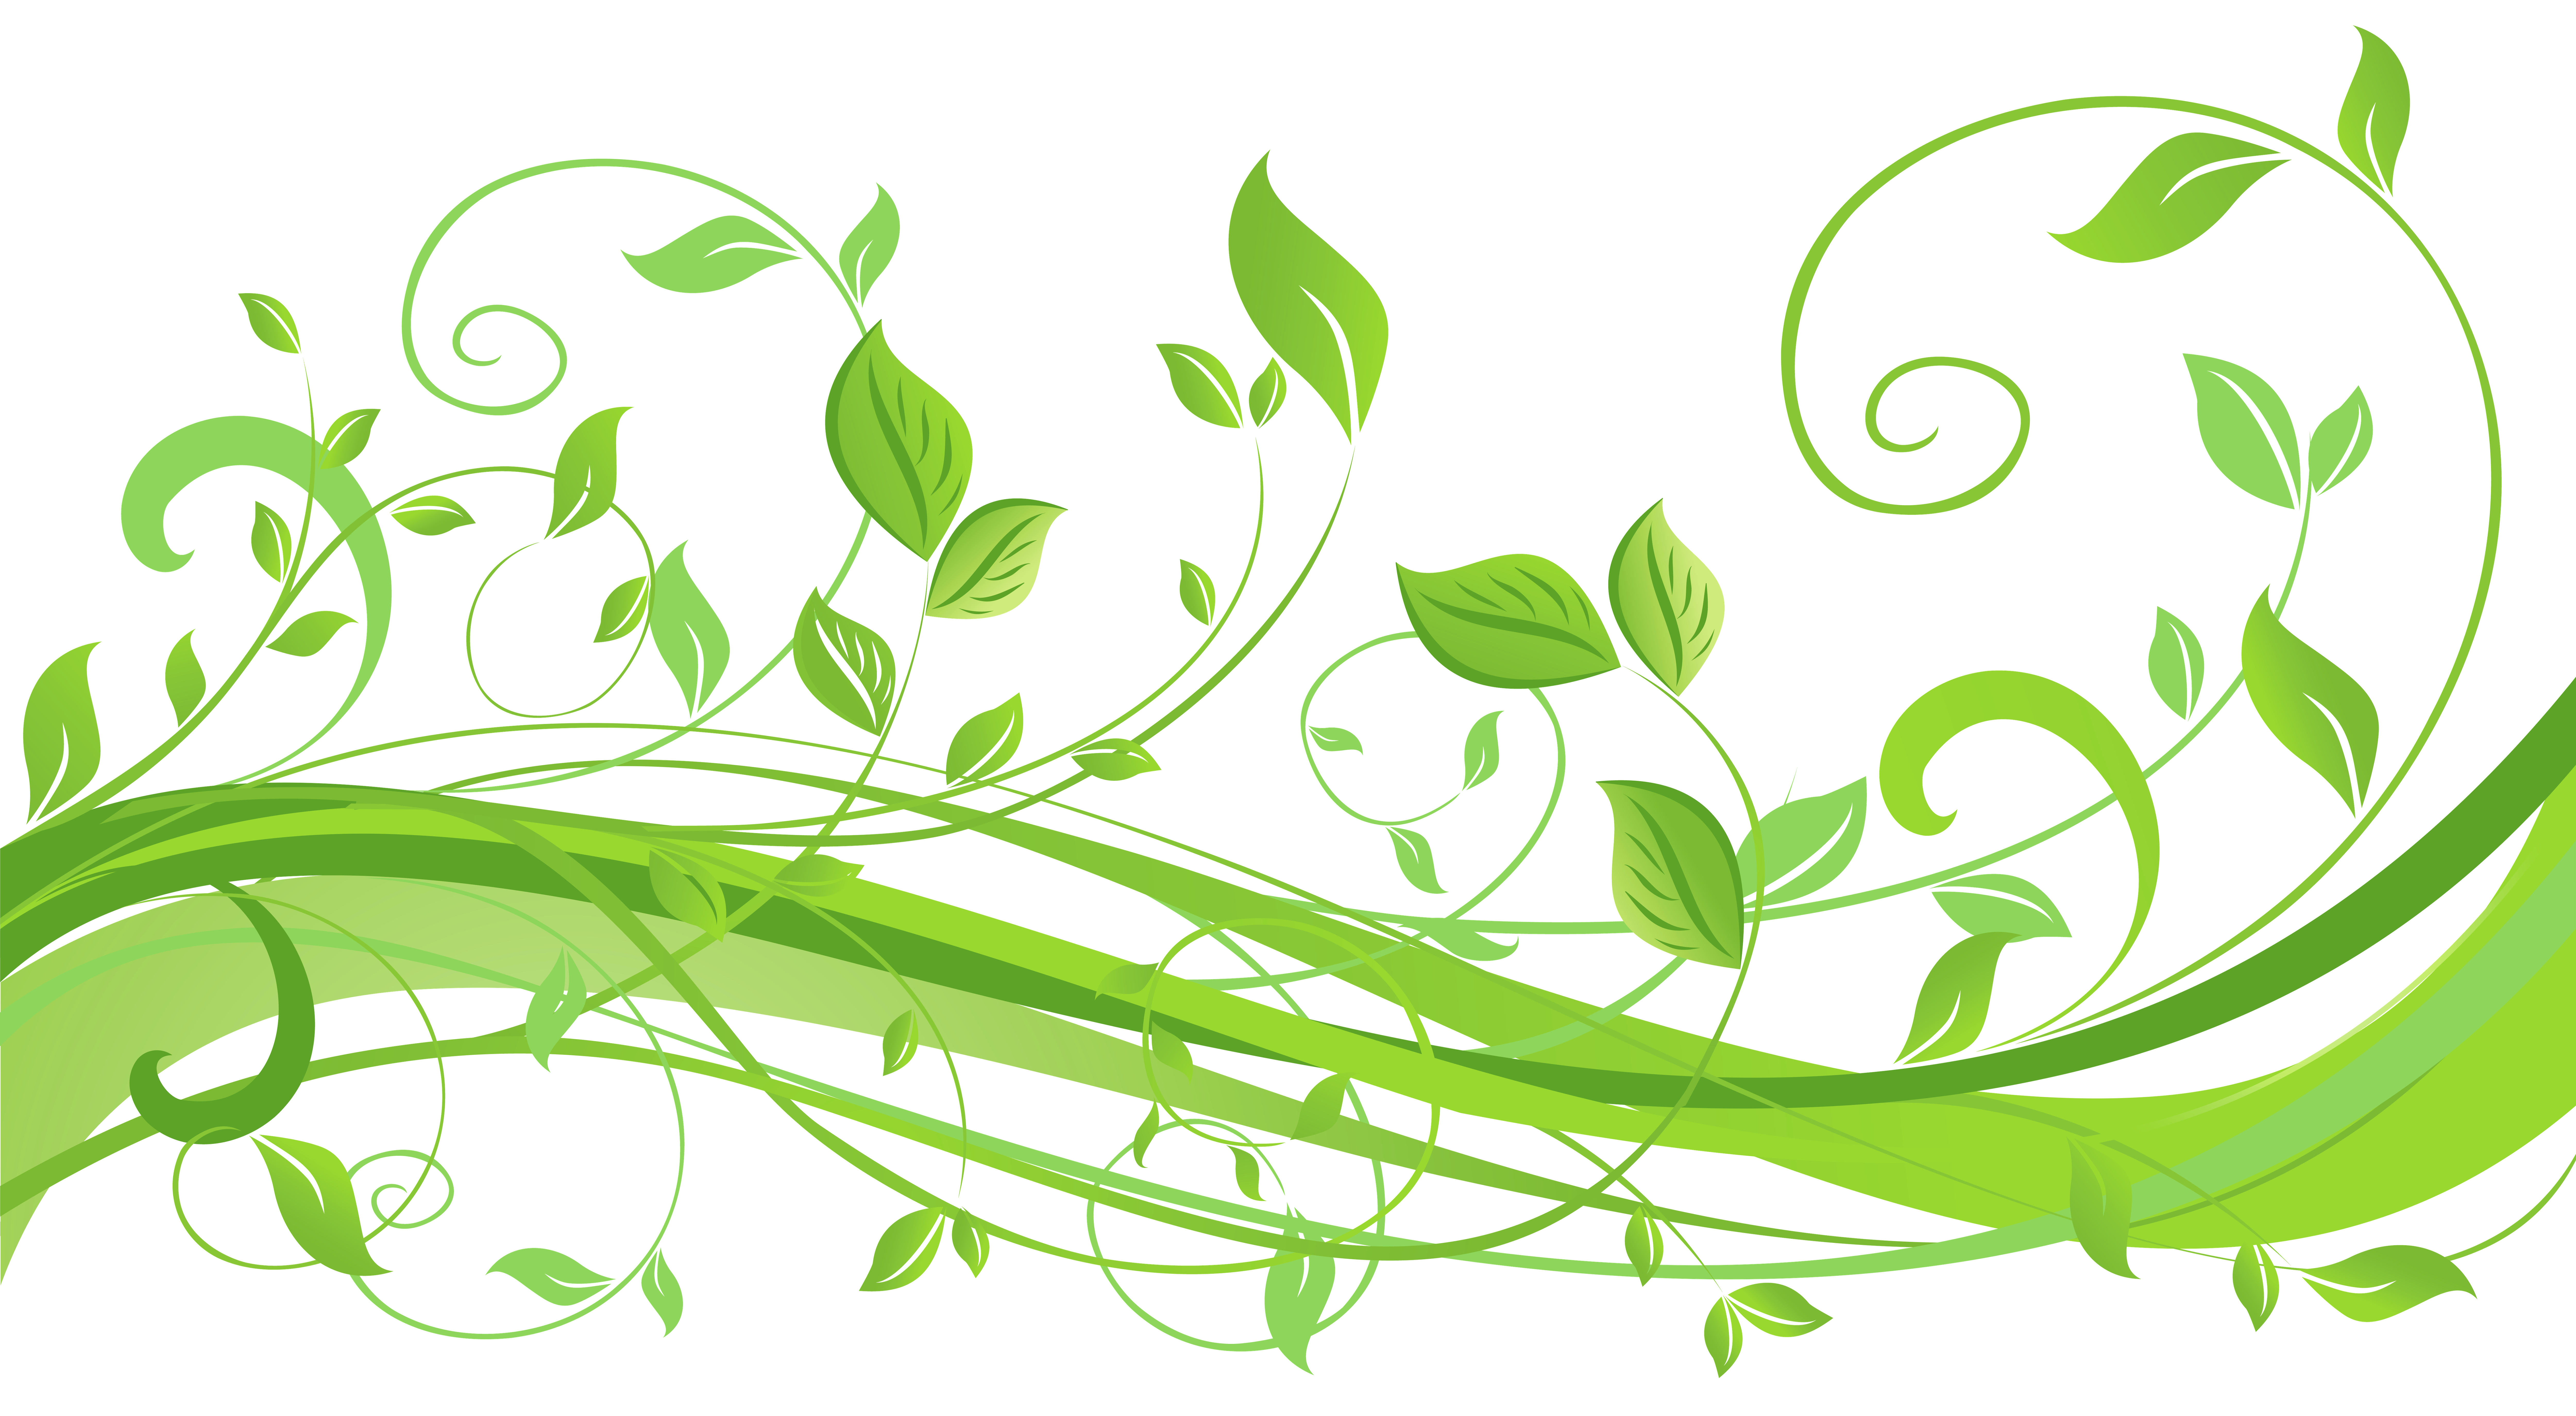 Leaf clipart ornament. Spring decoration with leaves